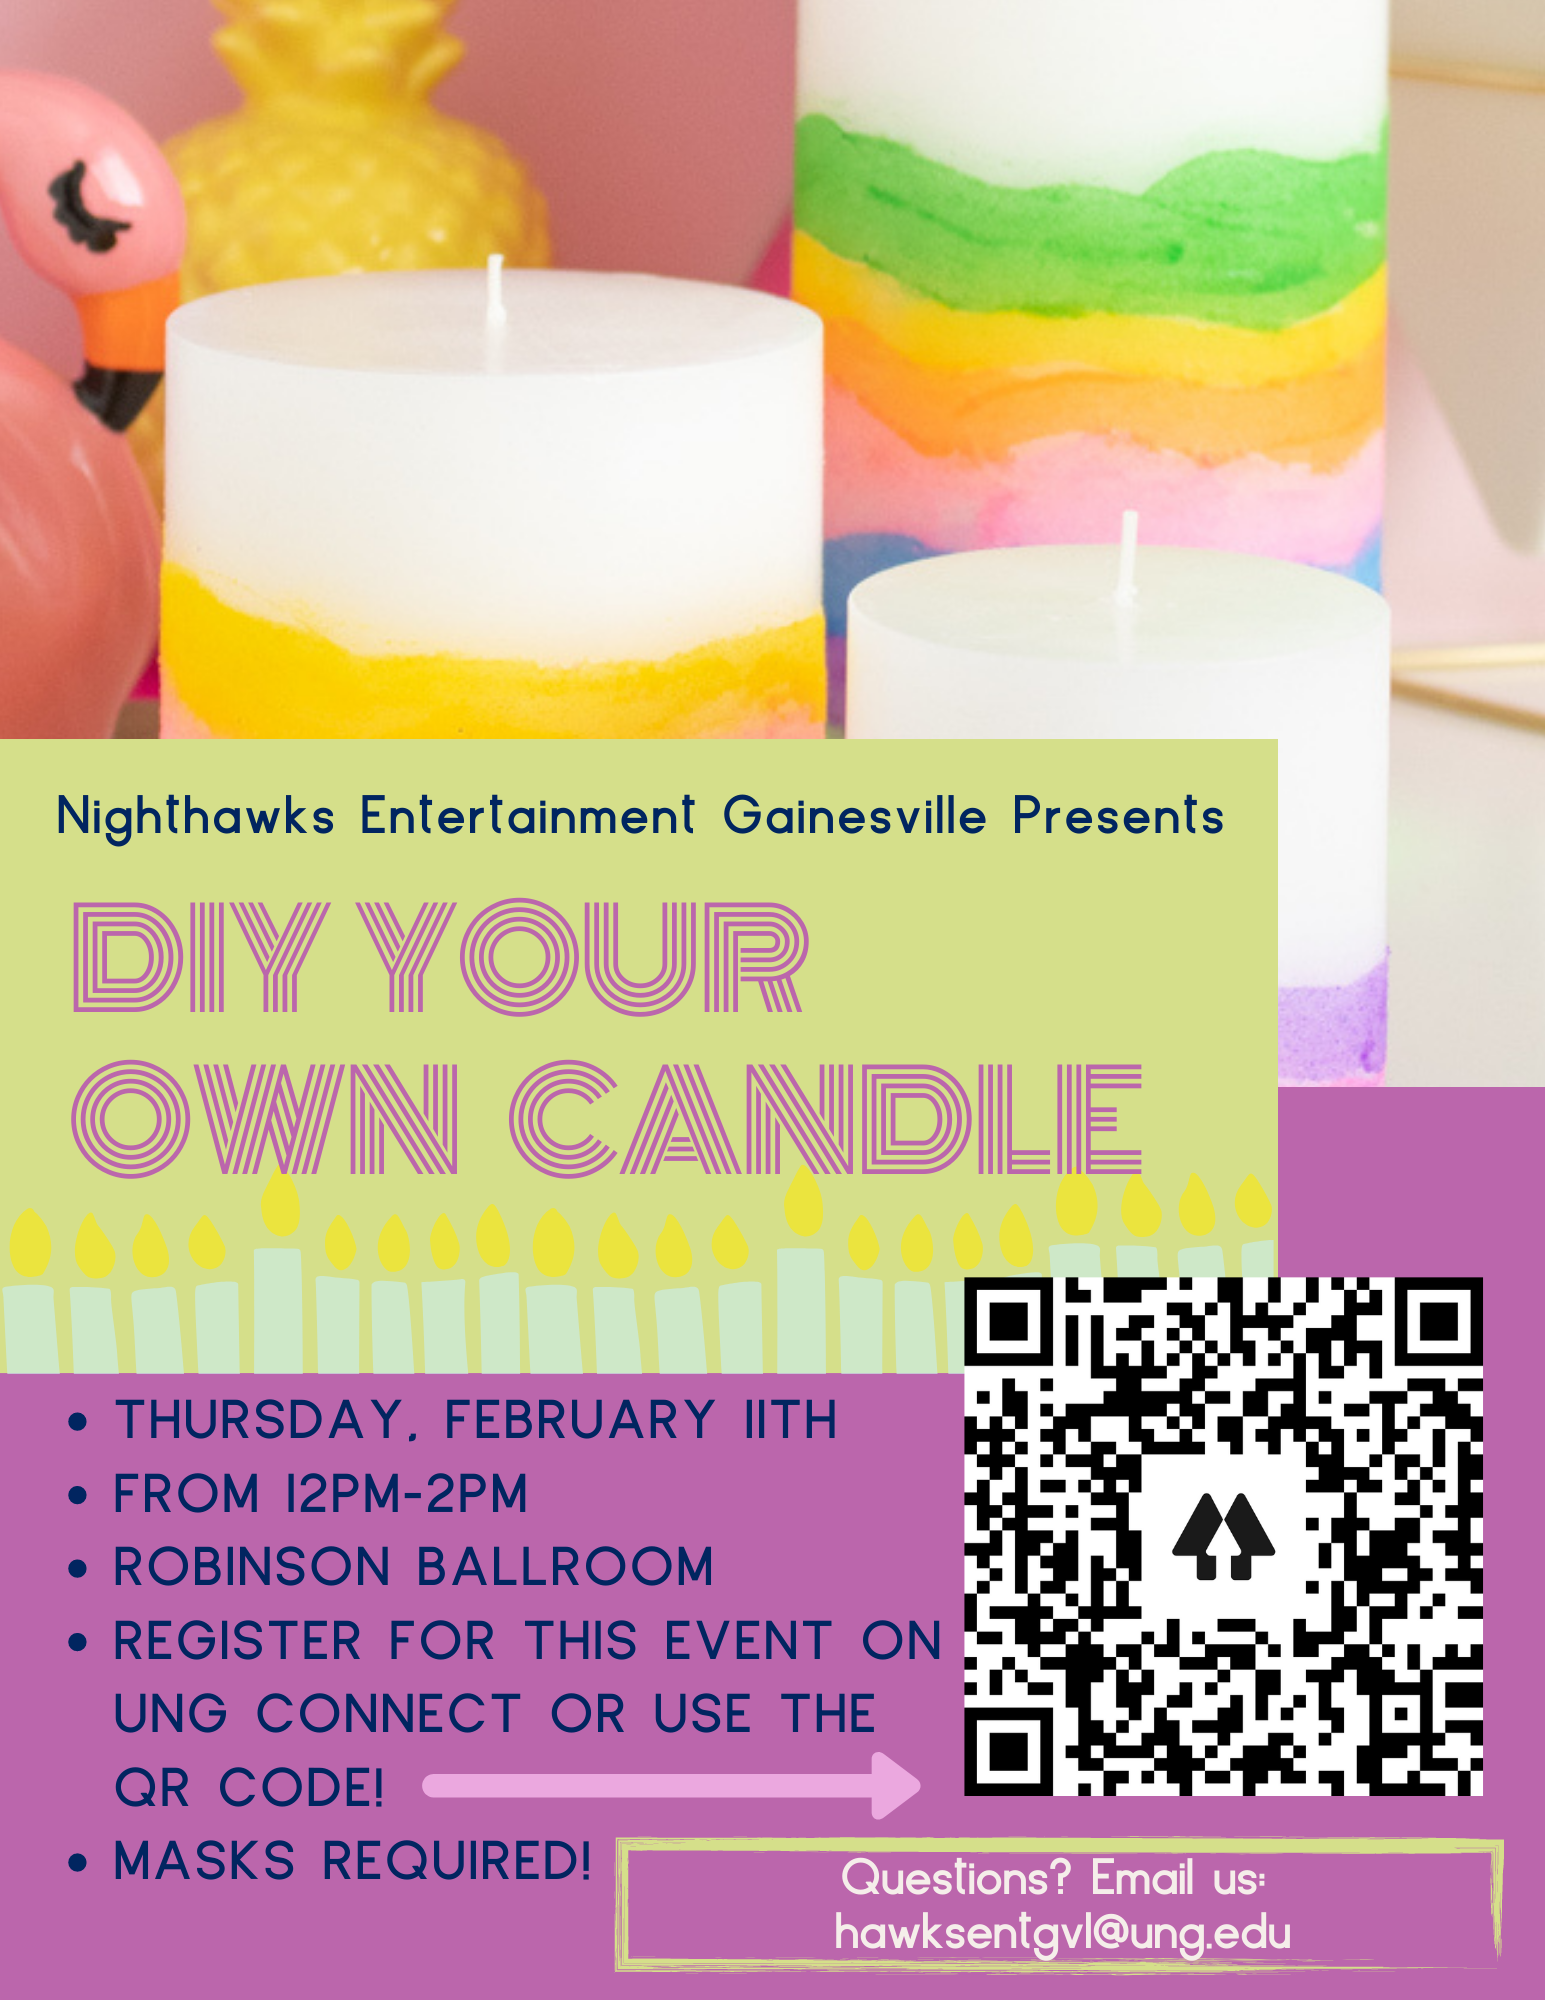 Nighthawks Entertainment (GVL) Presents: DIY Your Own Candle. Thursday, February 11th from 12pm - 2pm in the Robinson Ballroom. Register for this event on UNG Connect or use the QR code! Masks Required!